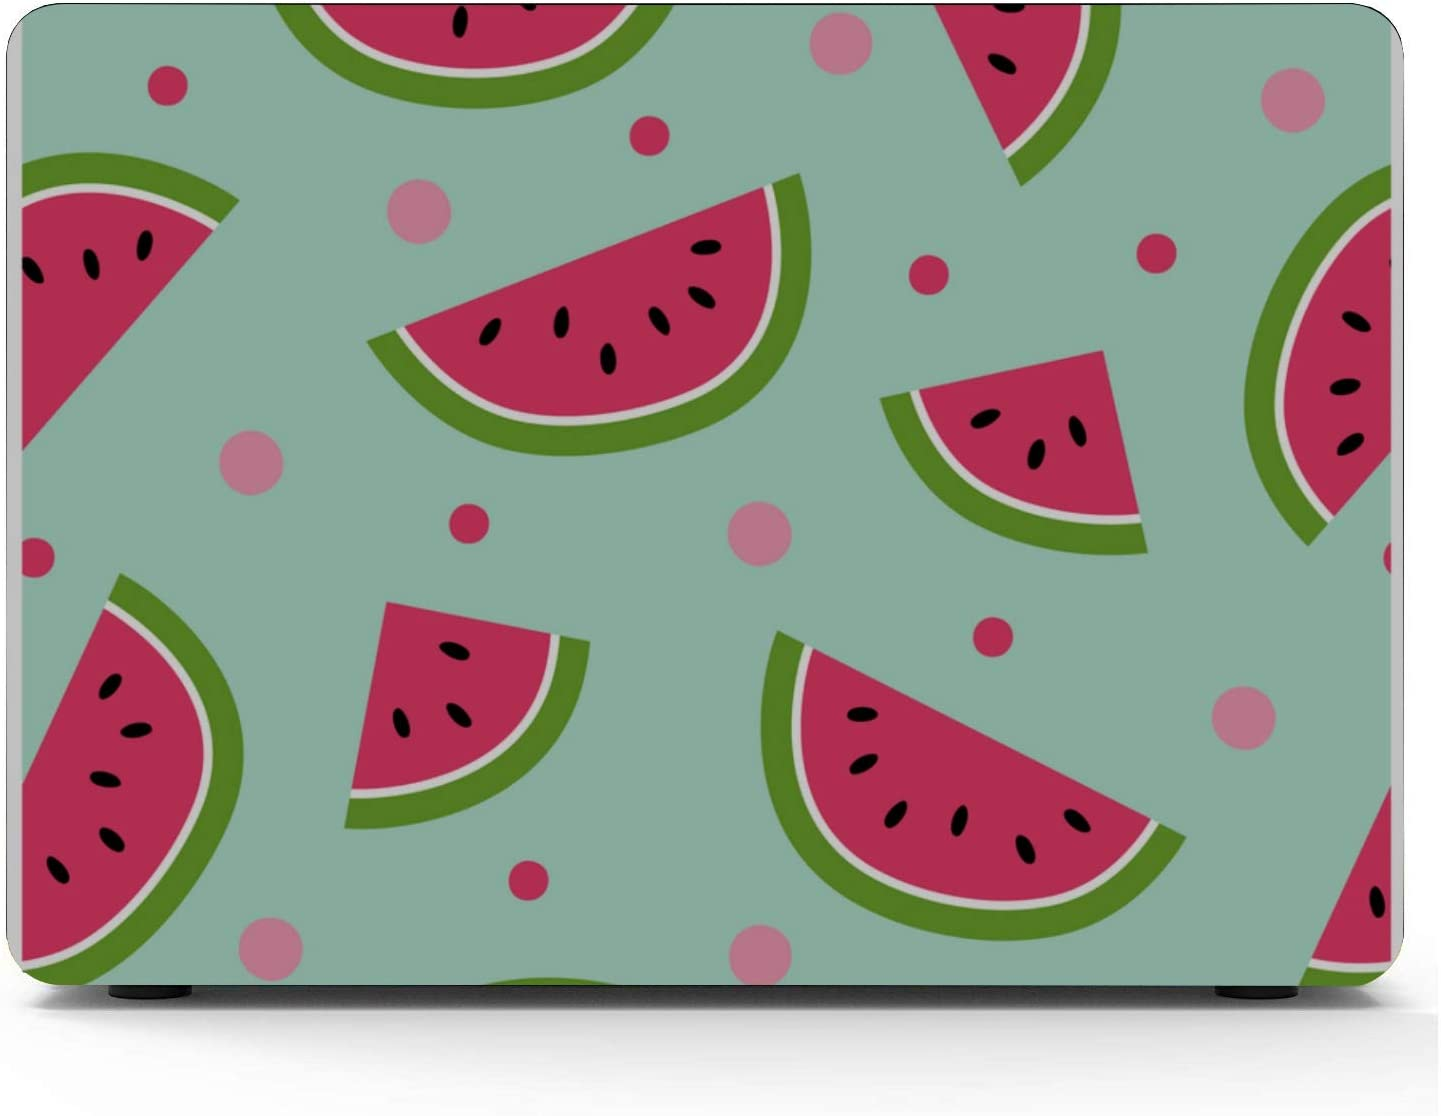 MacBook 13 Cover Summer Sweet Cool Fruit Watermelon Plastic Hard Shell Compatible Mac Air 11 Pro 13 15 MacBook Pro 2017 Accessories Protection for MacBook 2016-2019 Version